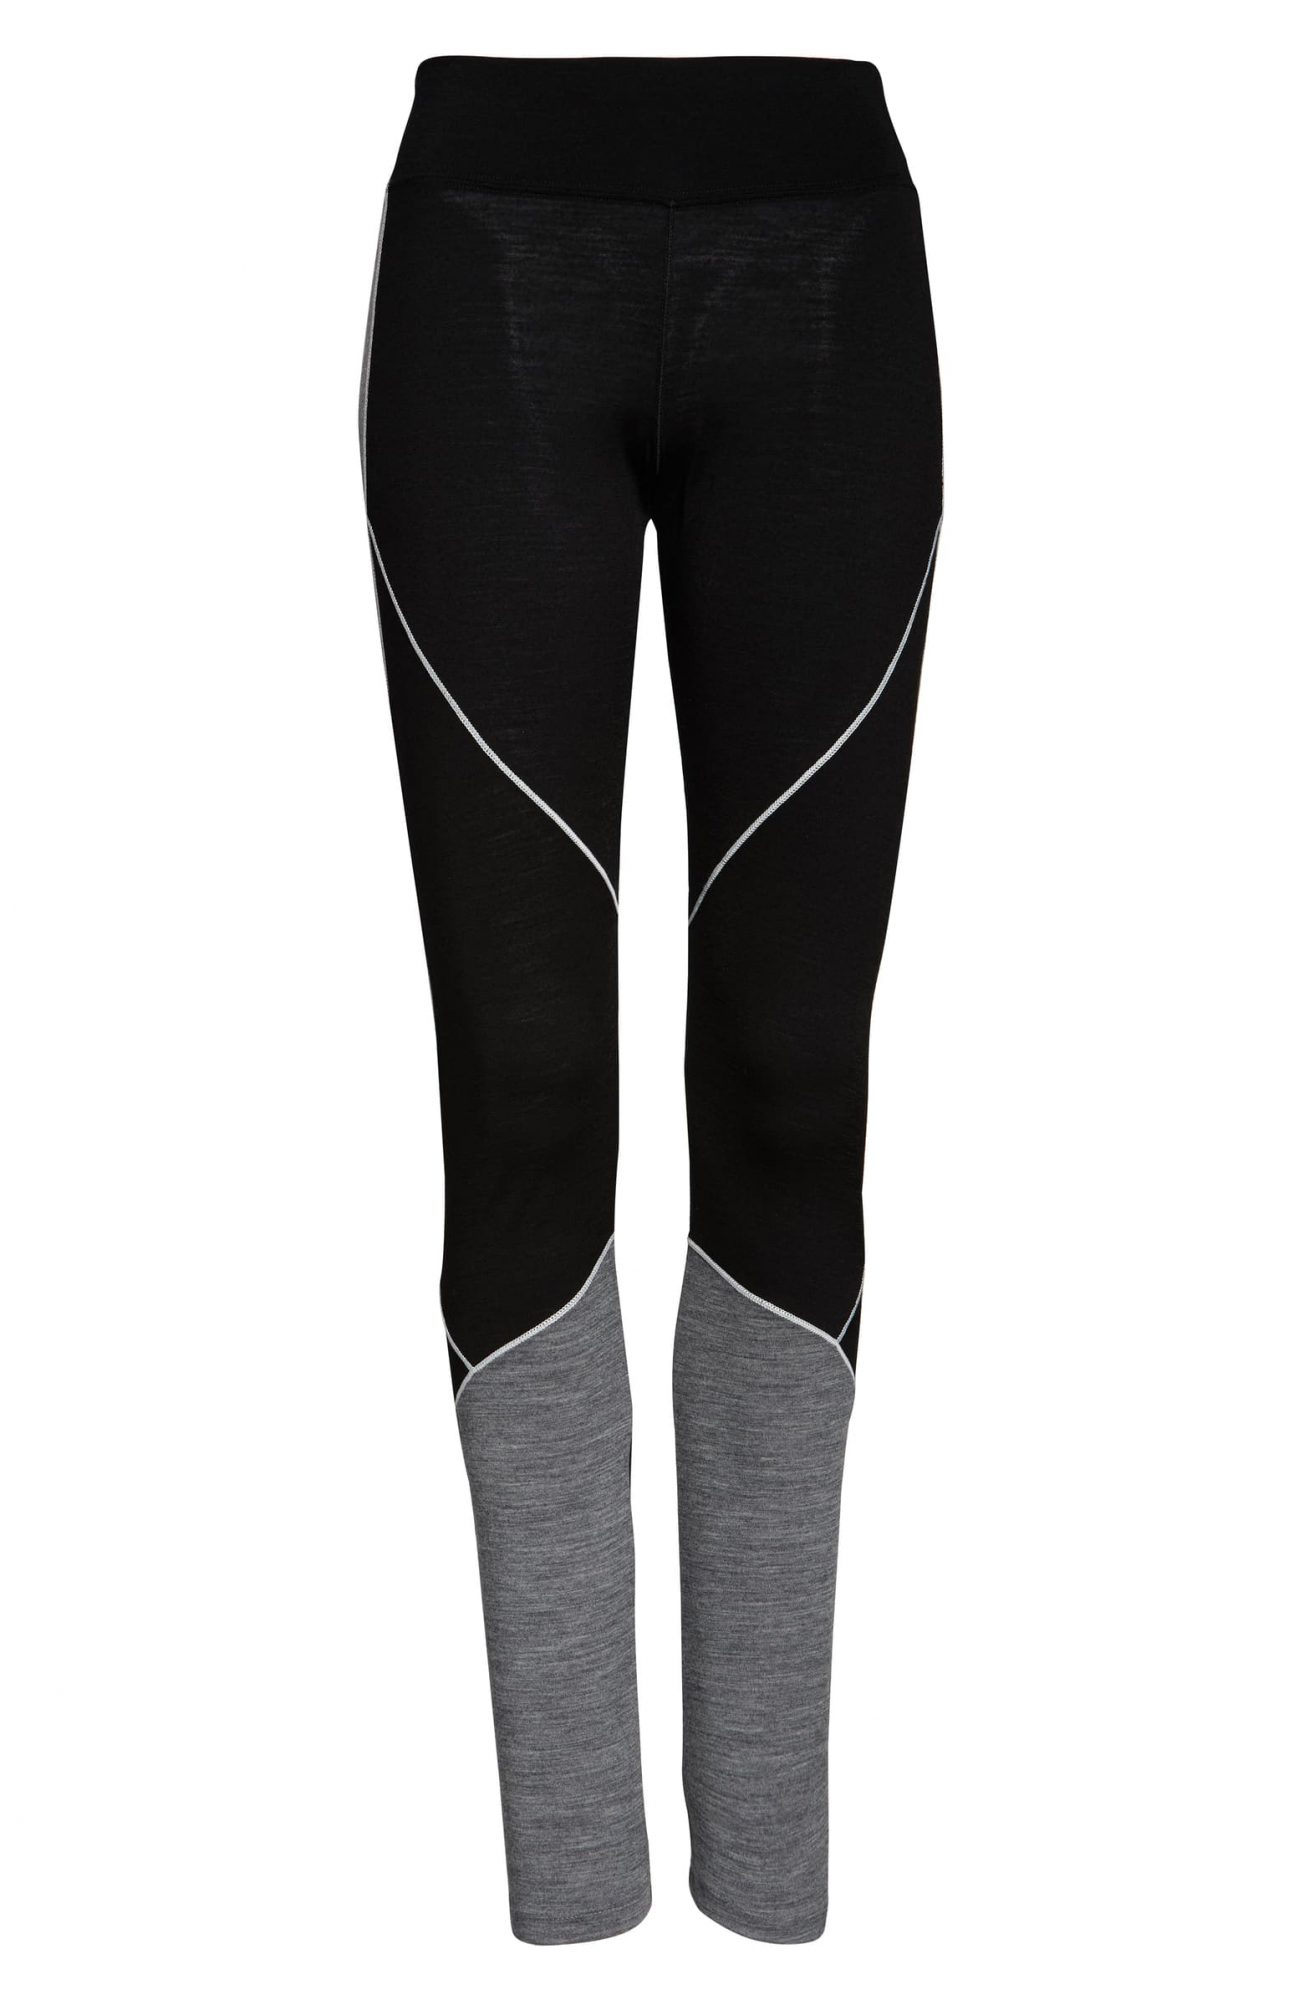 Icebreaker Merino Wool Leggings